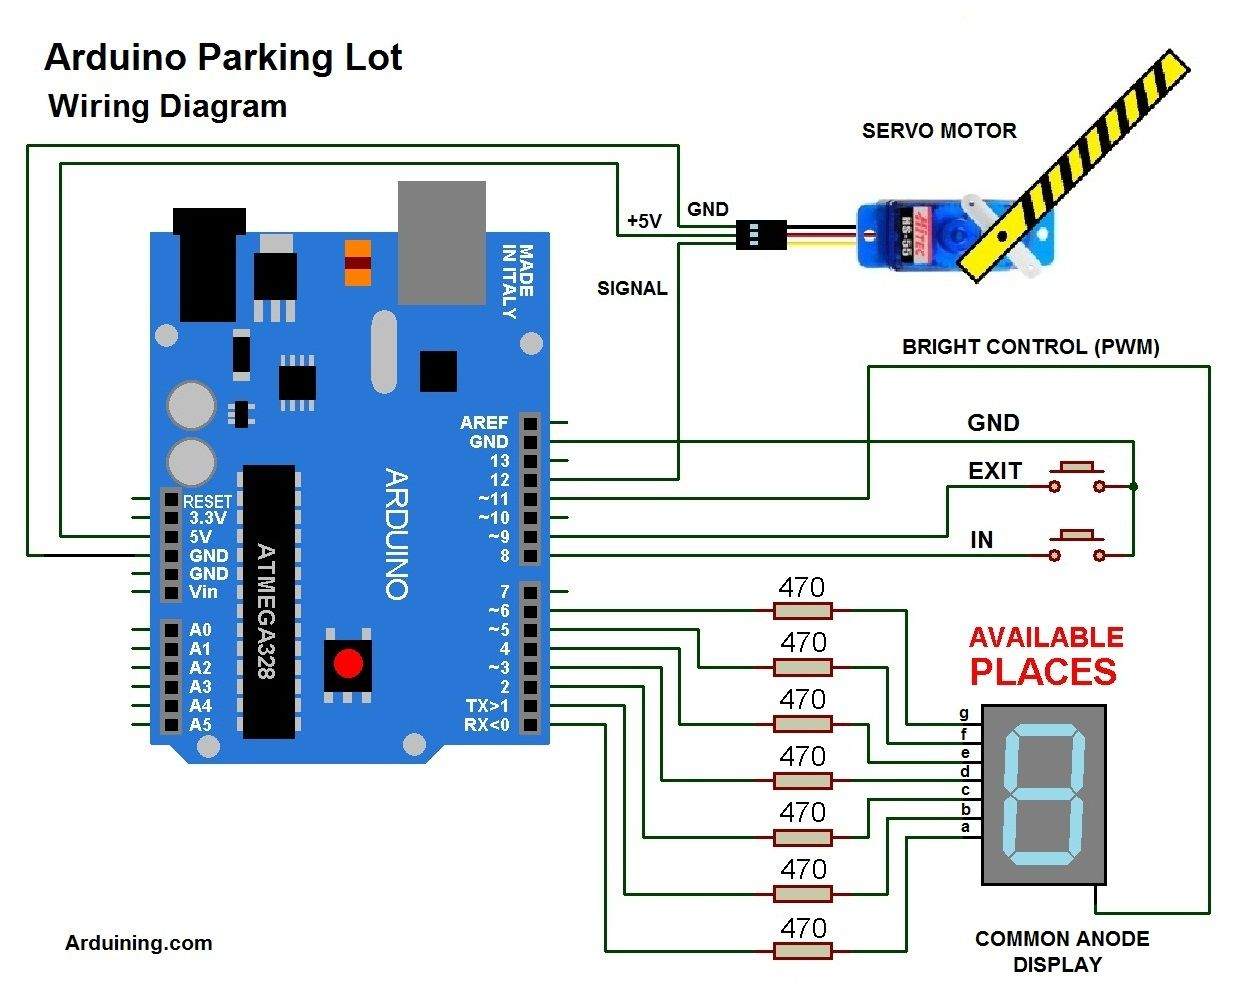 small resolution of wiring diagram here is the code parkingl02 pde arduining com 08 jul 2012 code used in the production of the youtube material